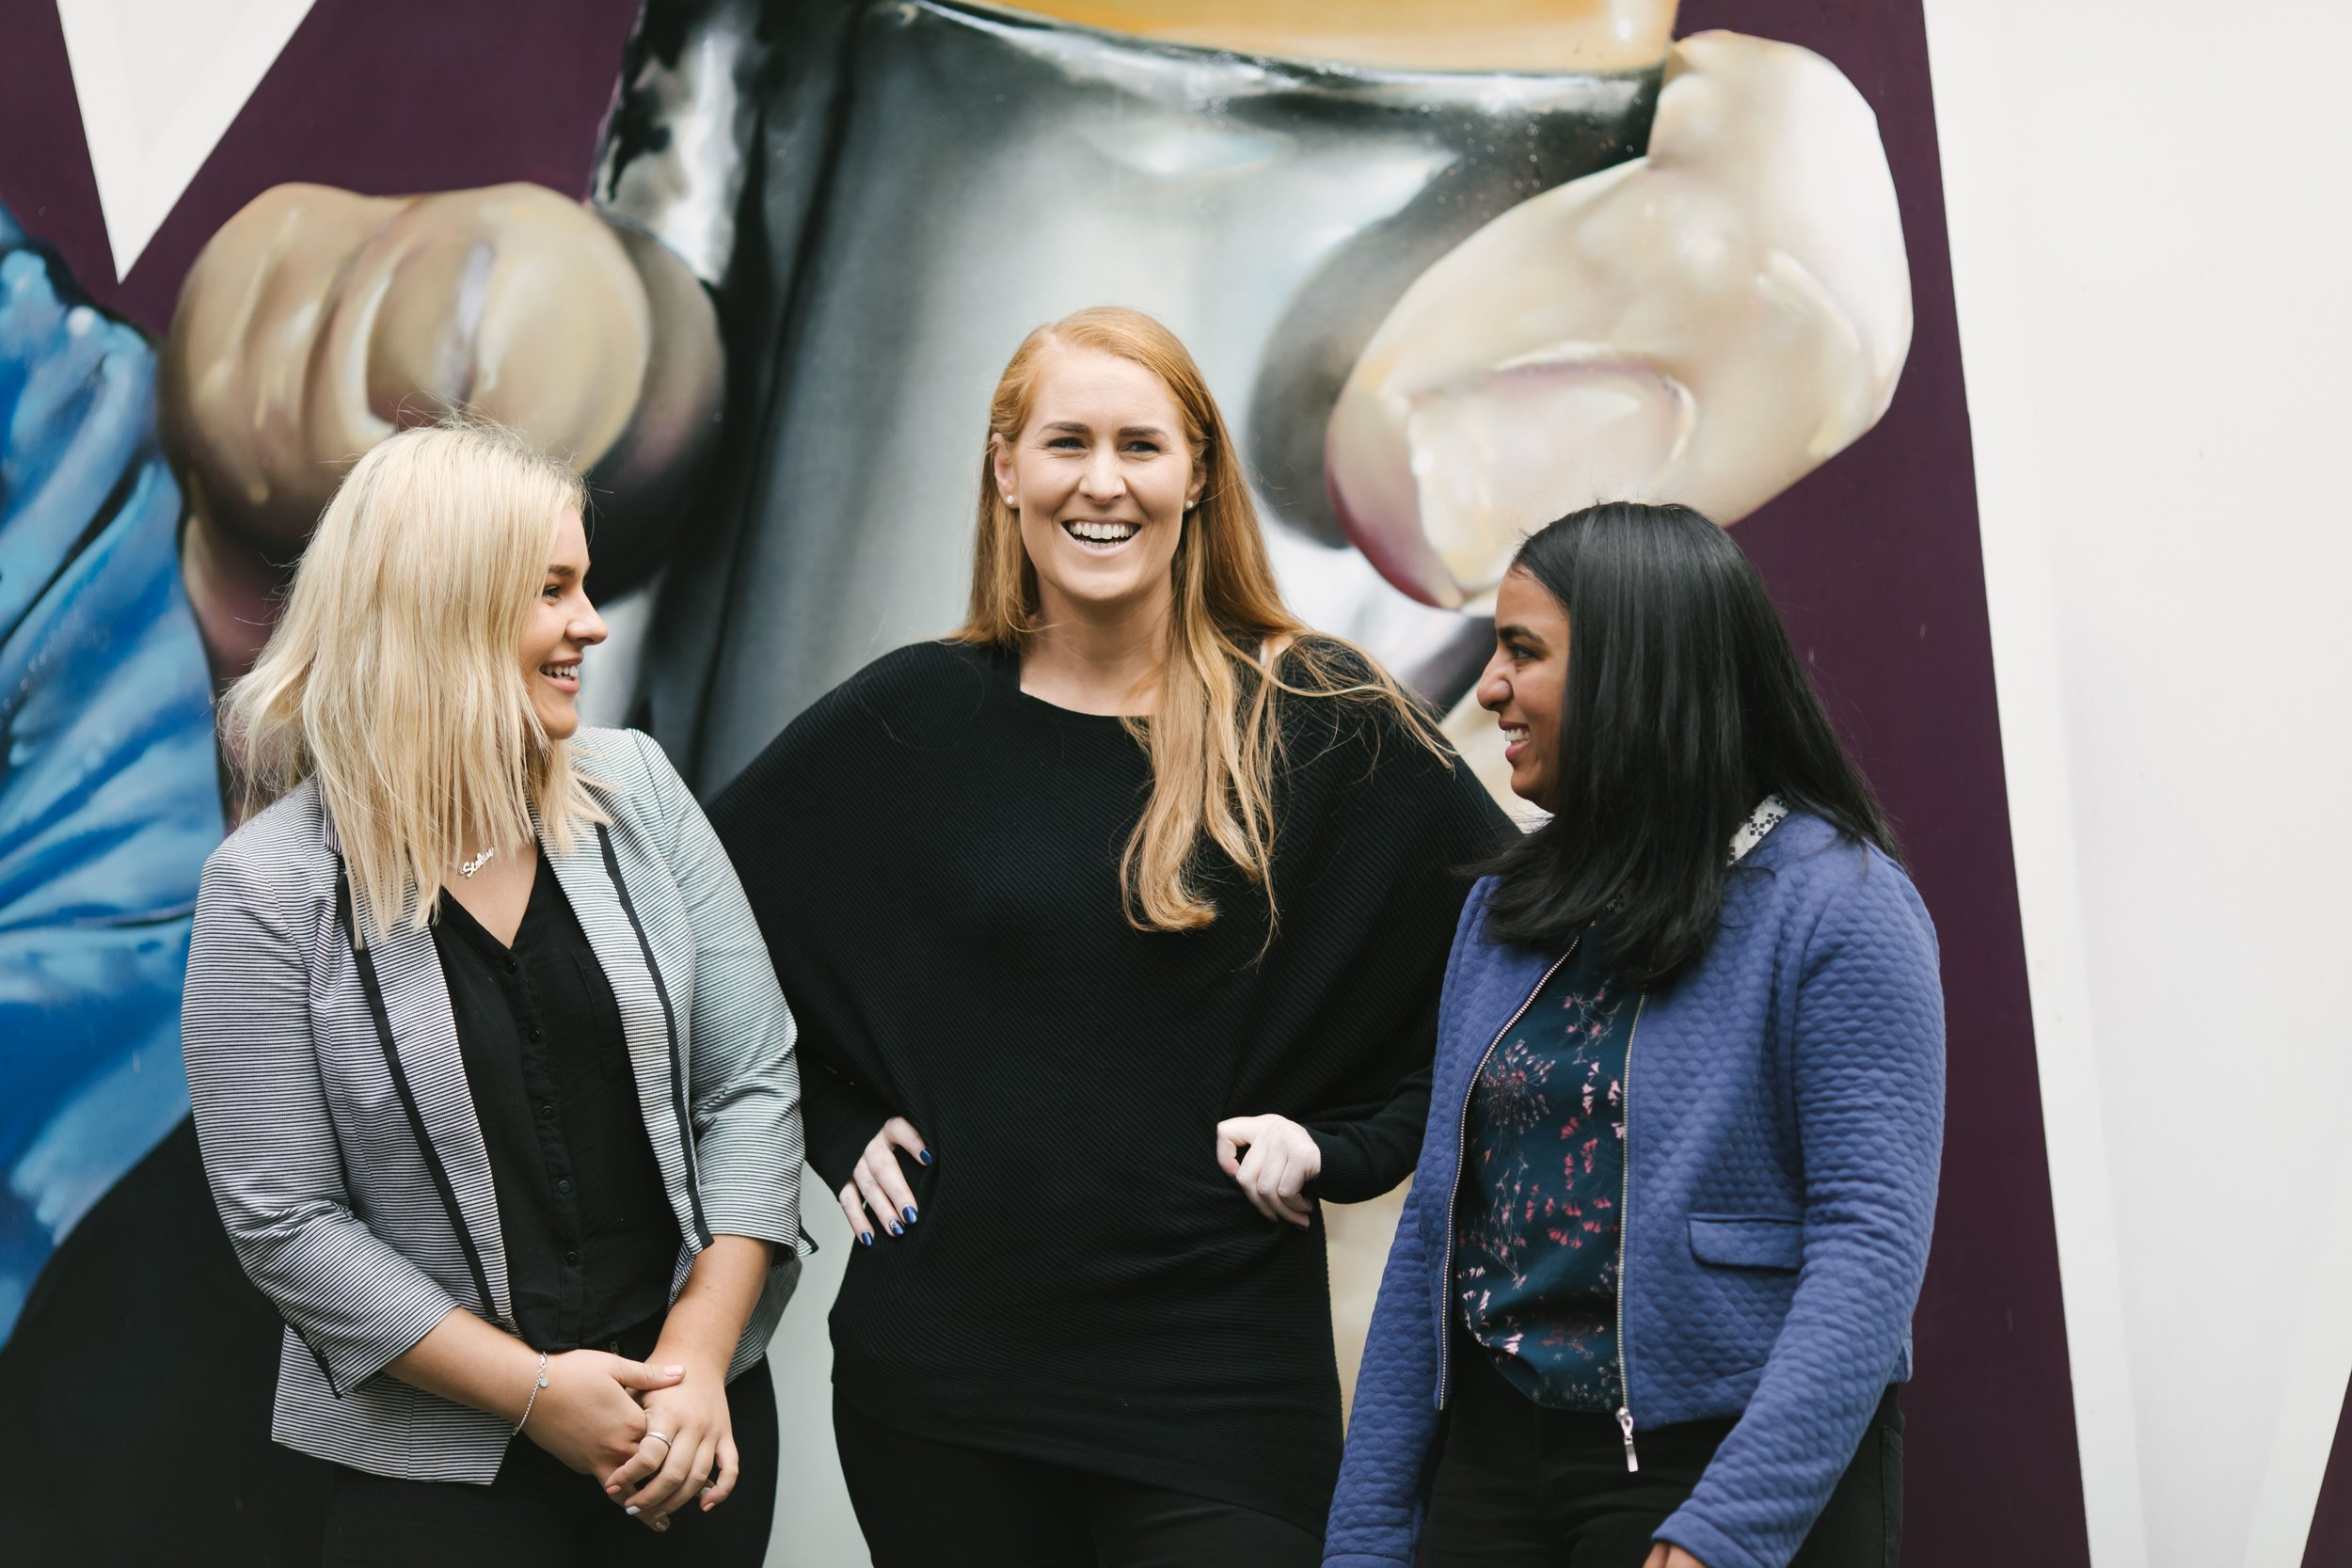 Renee, Business Support (left) - Lisa, Founder & Director (middle) - Simi, Accounting intern (right)  WE HAVE SIX OTHER WONDERFUL TEAM MEMBERS ACROSS NEW ZEALAND HELPING TO CREATE SUCCESS IN OUR CLIENTS BUSINESSES.  THIS EXCLUDES OUR PARTNER FIRMS.